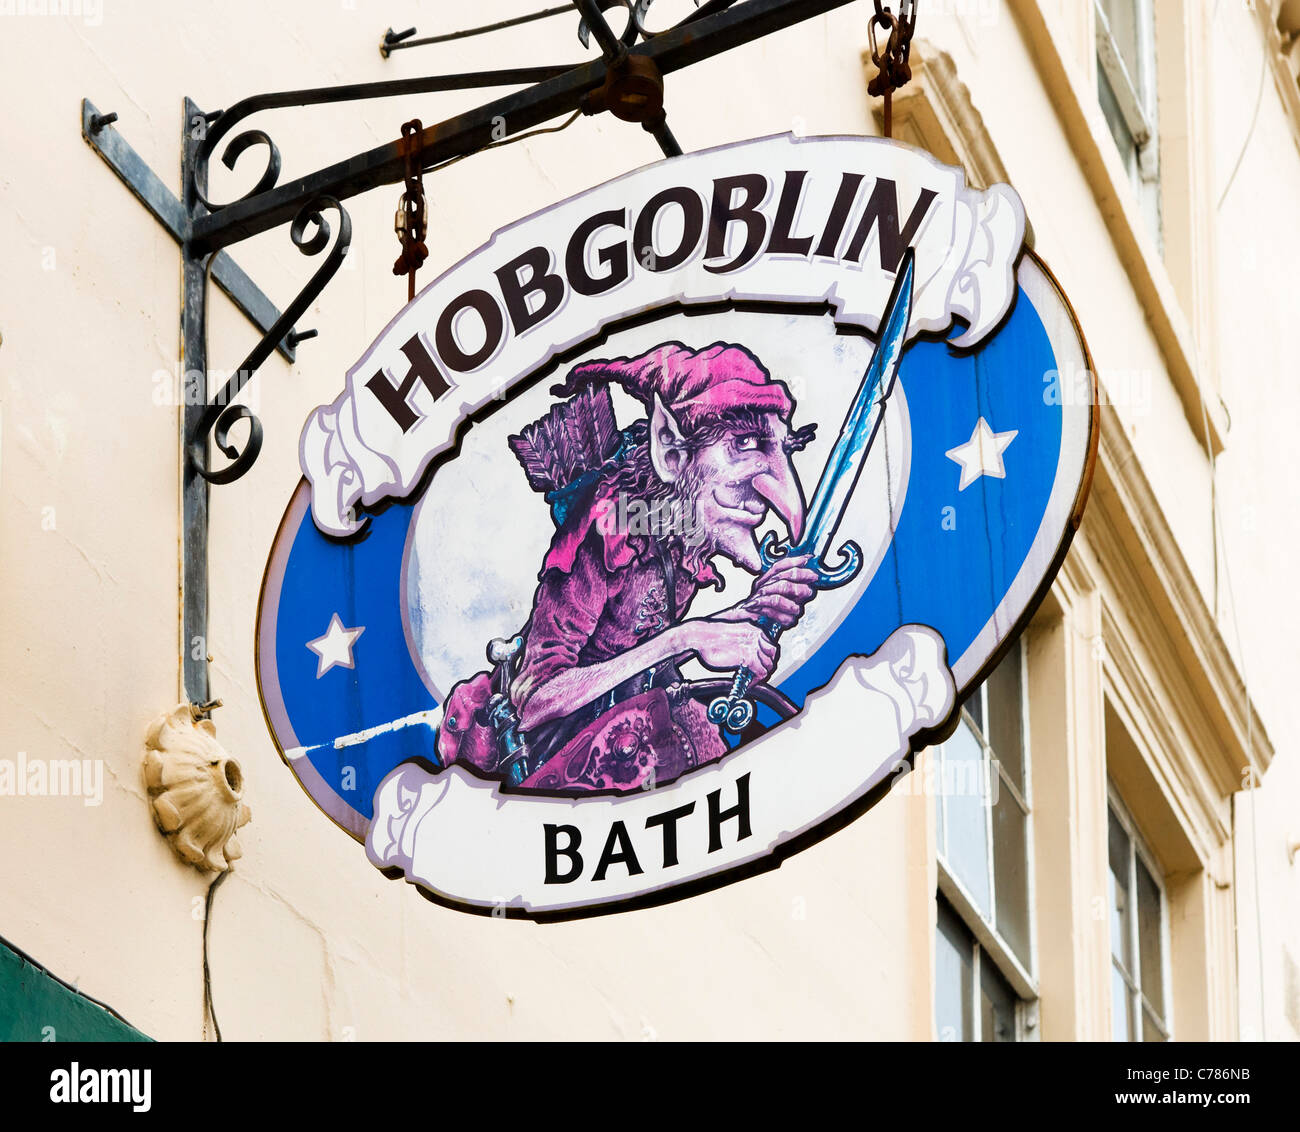 Sign for the Hobgoblin pub in the city centre, Bath, Somerset, England, UK - Stock Image